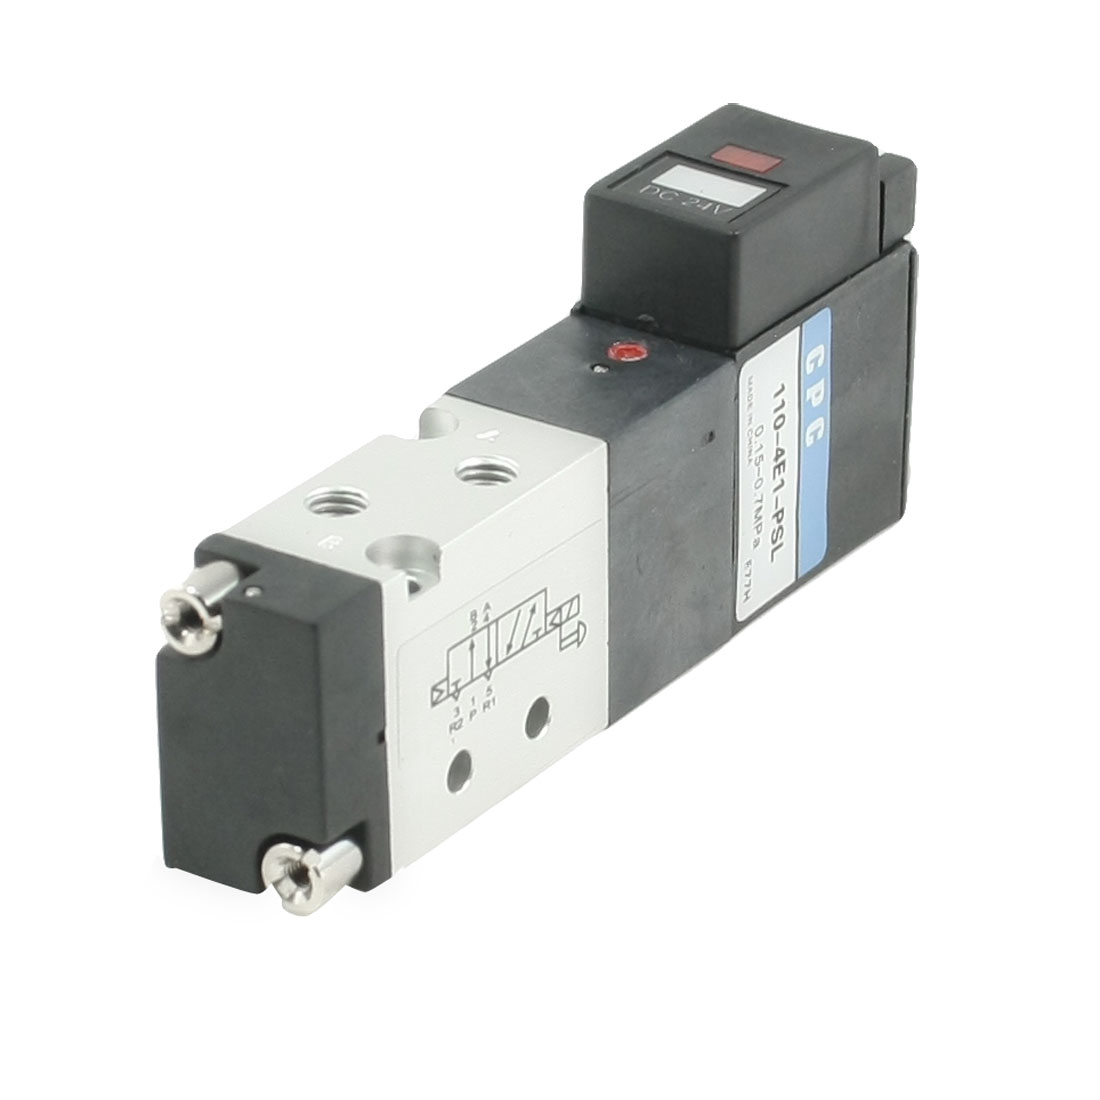 110-4E1-PSL 5 Way 2 Position 4mm Pneumatic Solenoid Valve